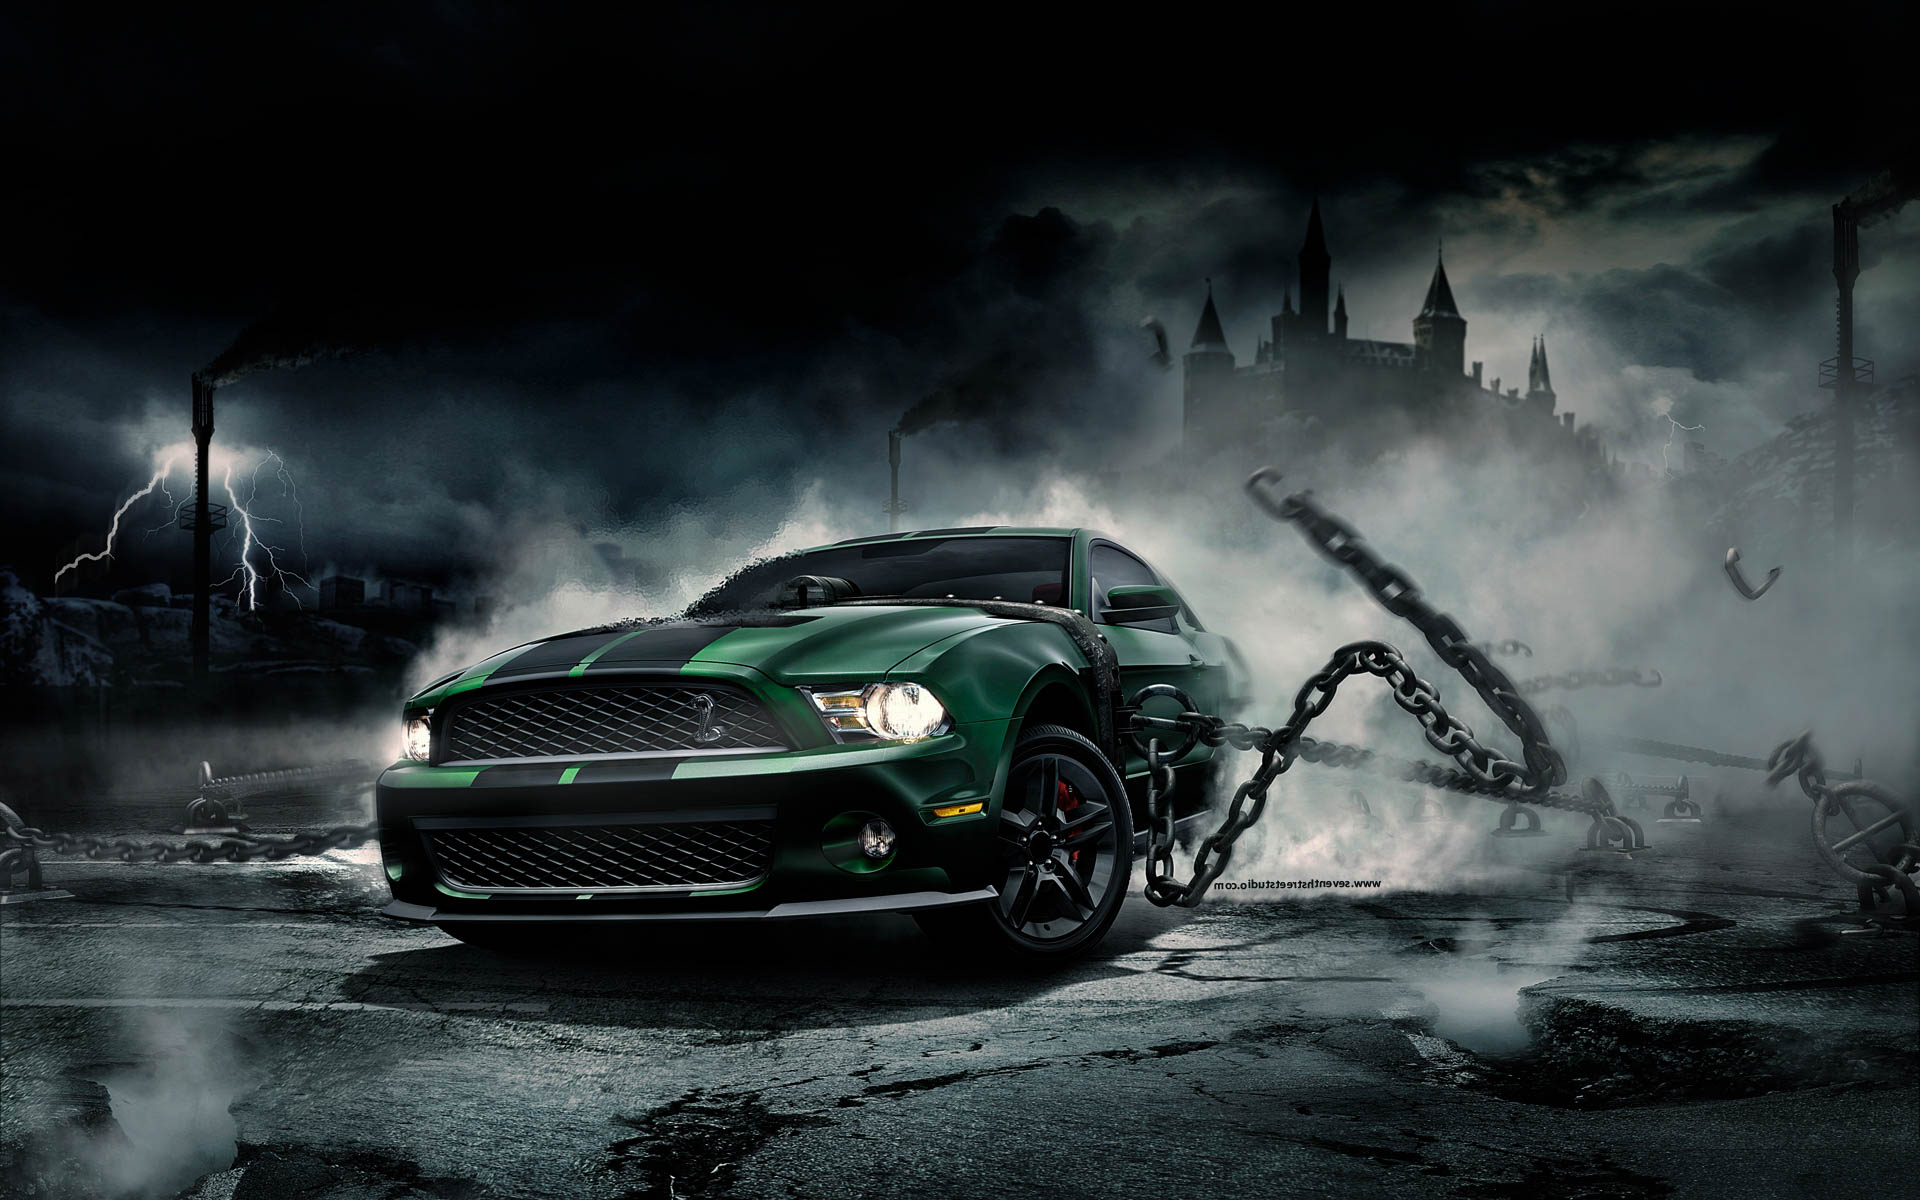 Ford Mustang New Model Epic HD Wallpapers 2017 1920x1200